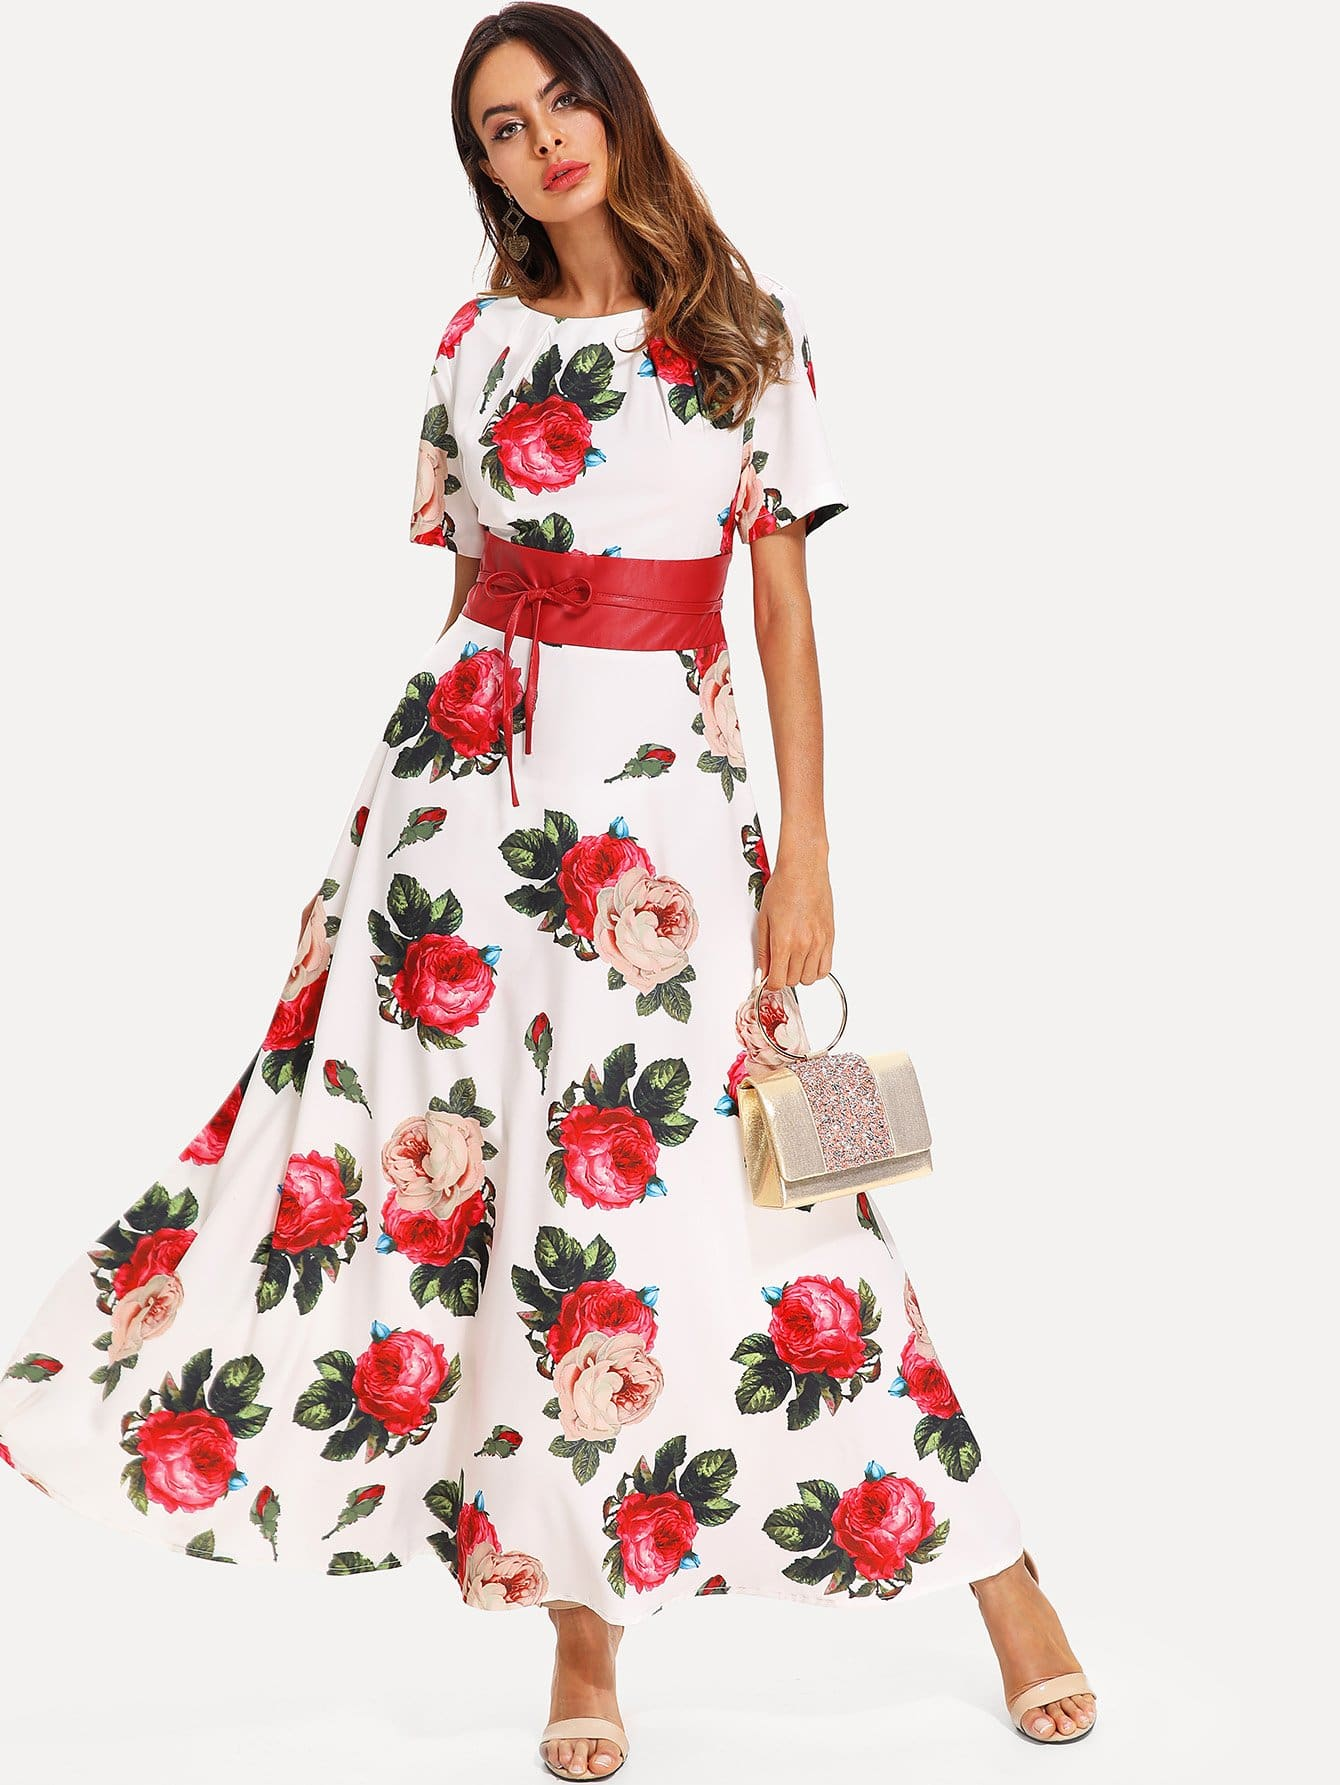 Floral Print Bow Detail Longline Dress bow detail longline dress